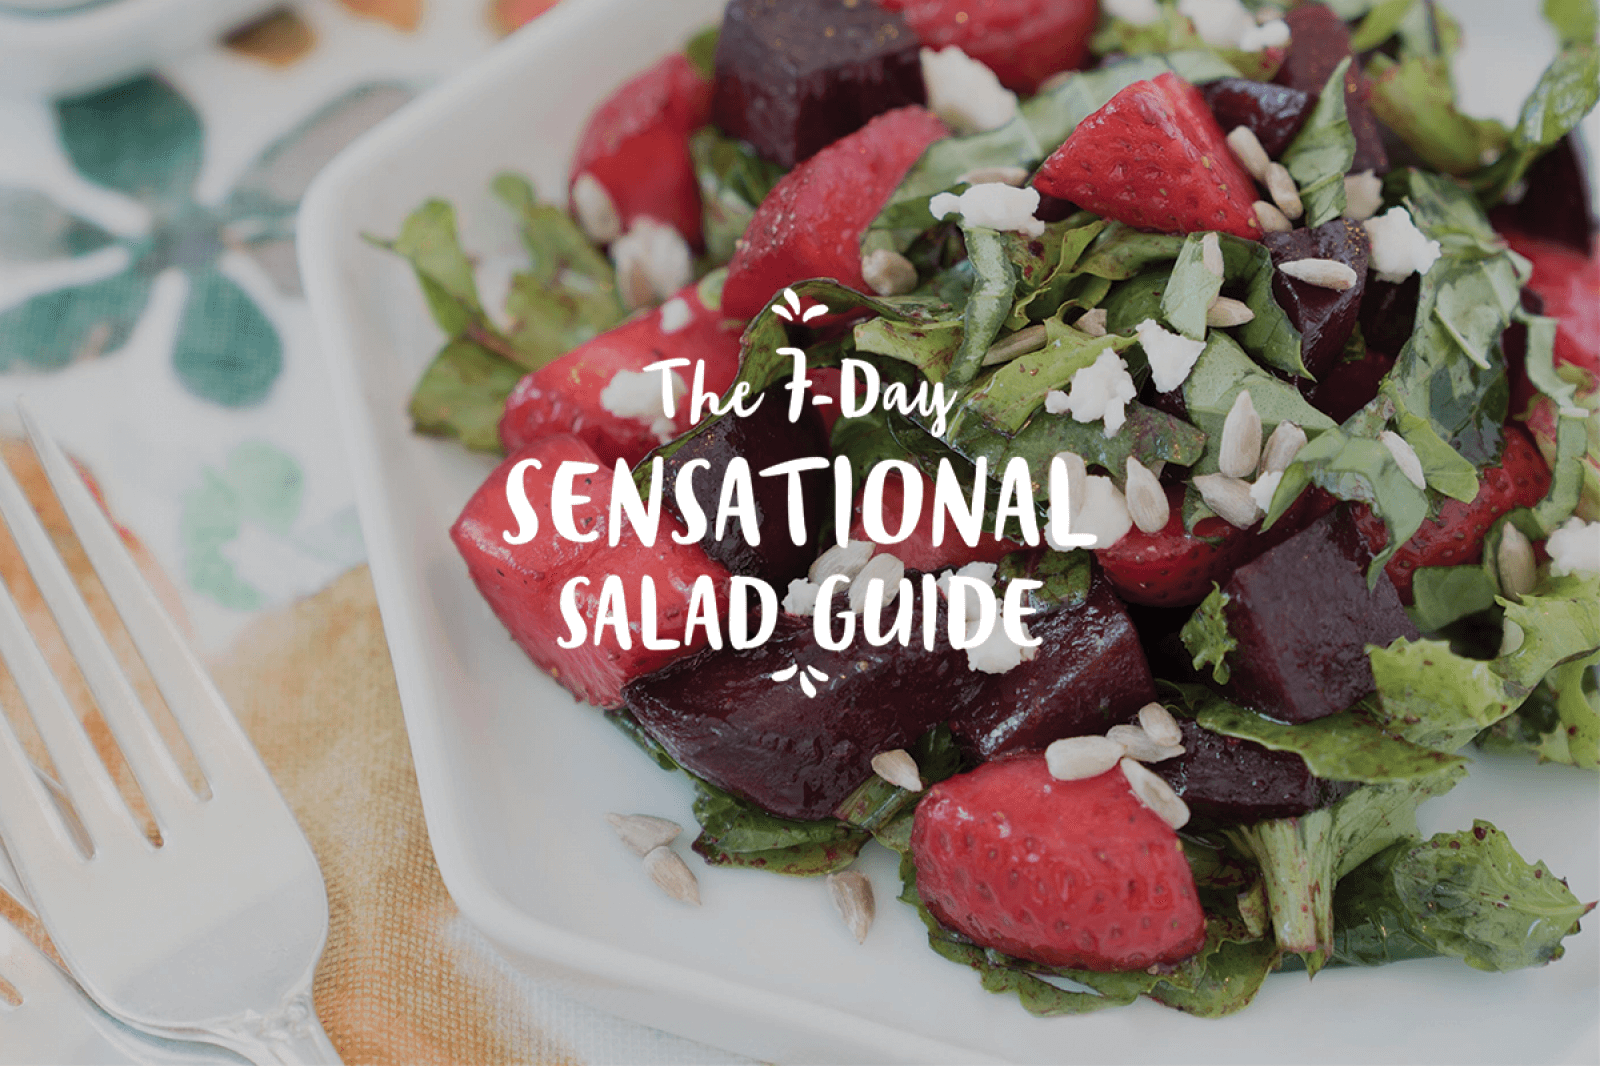 Sensational Salad Guide thumbnail